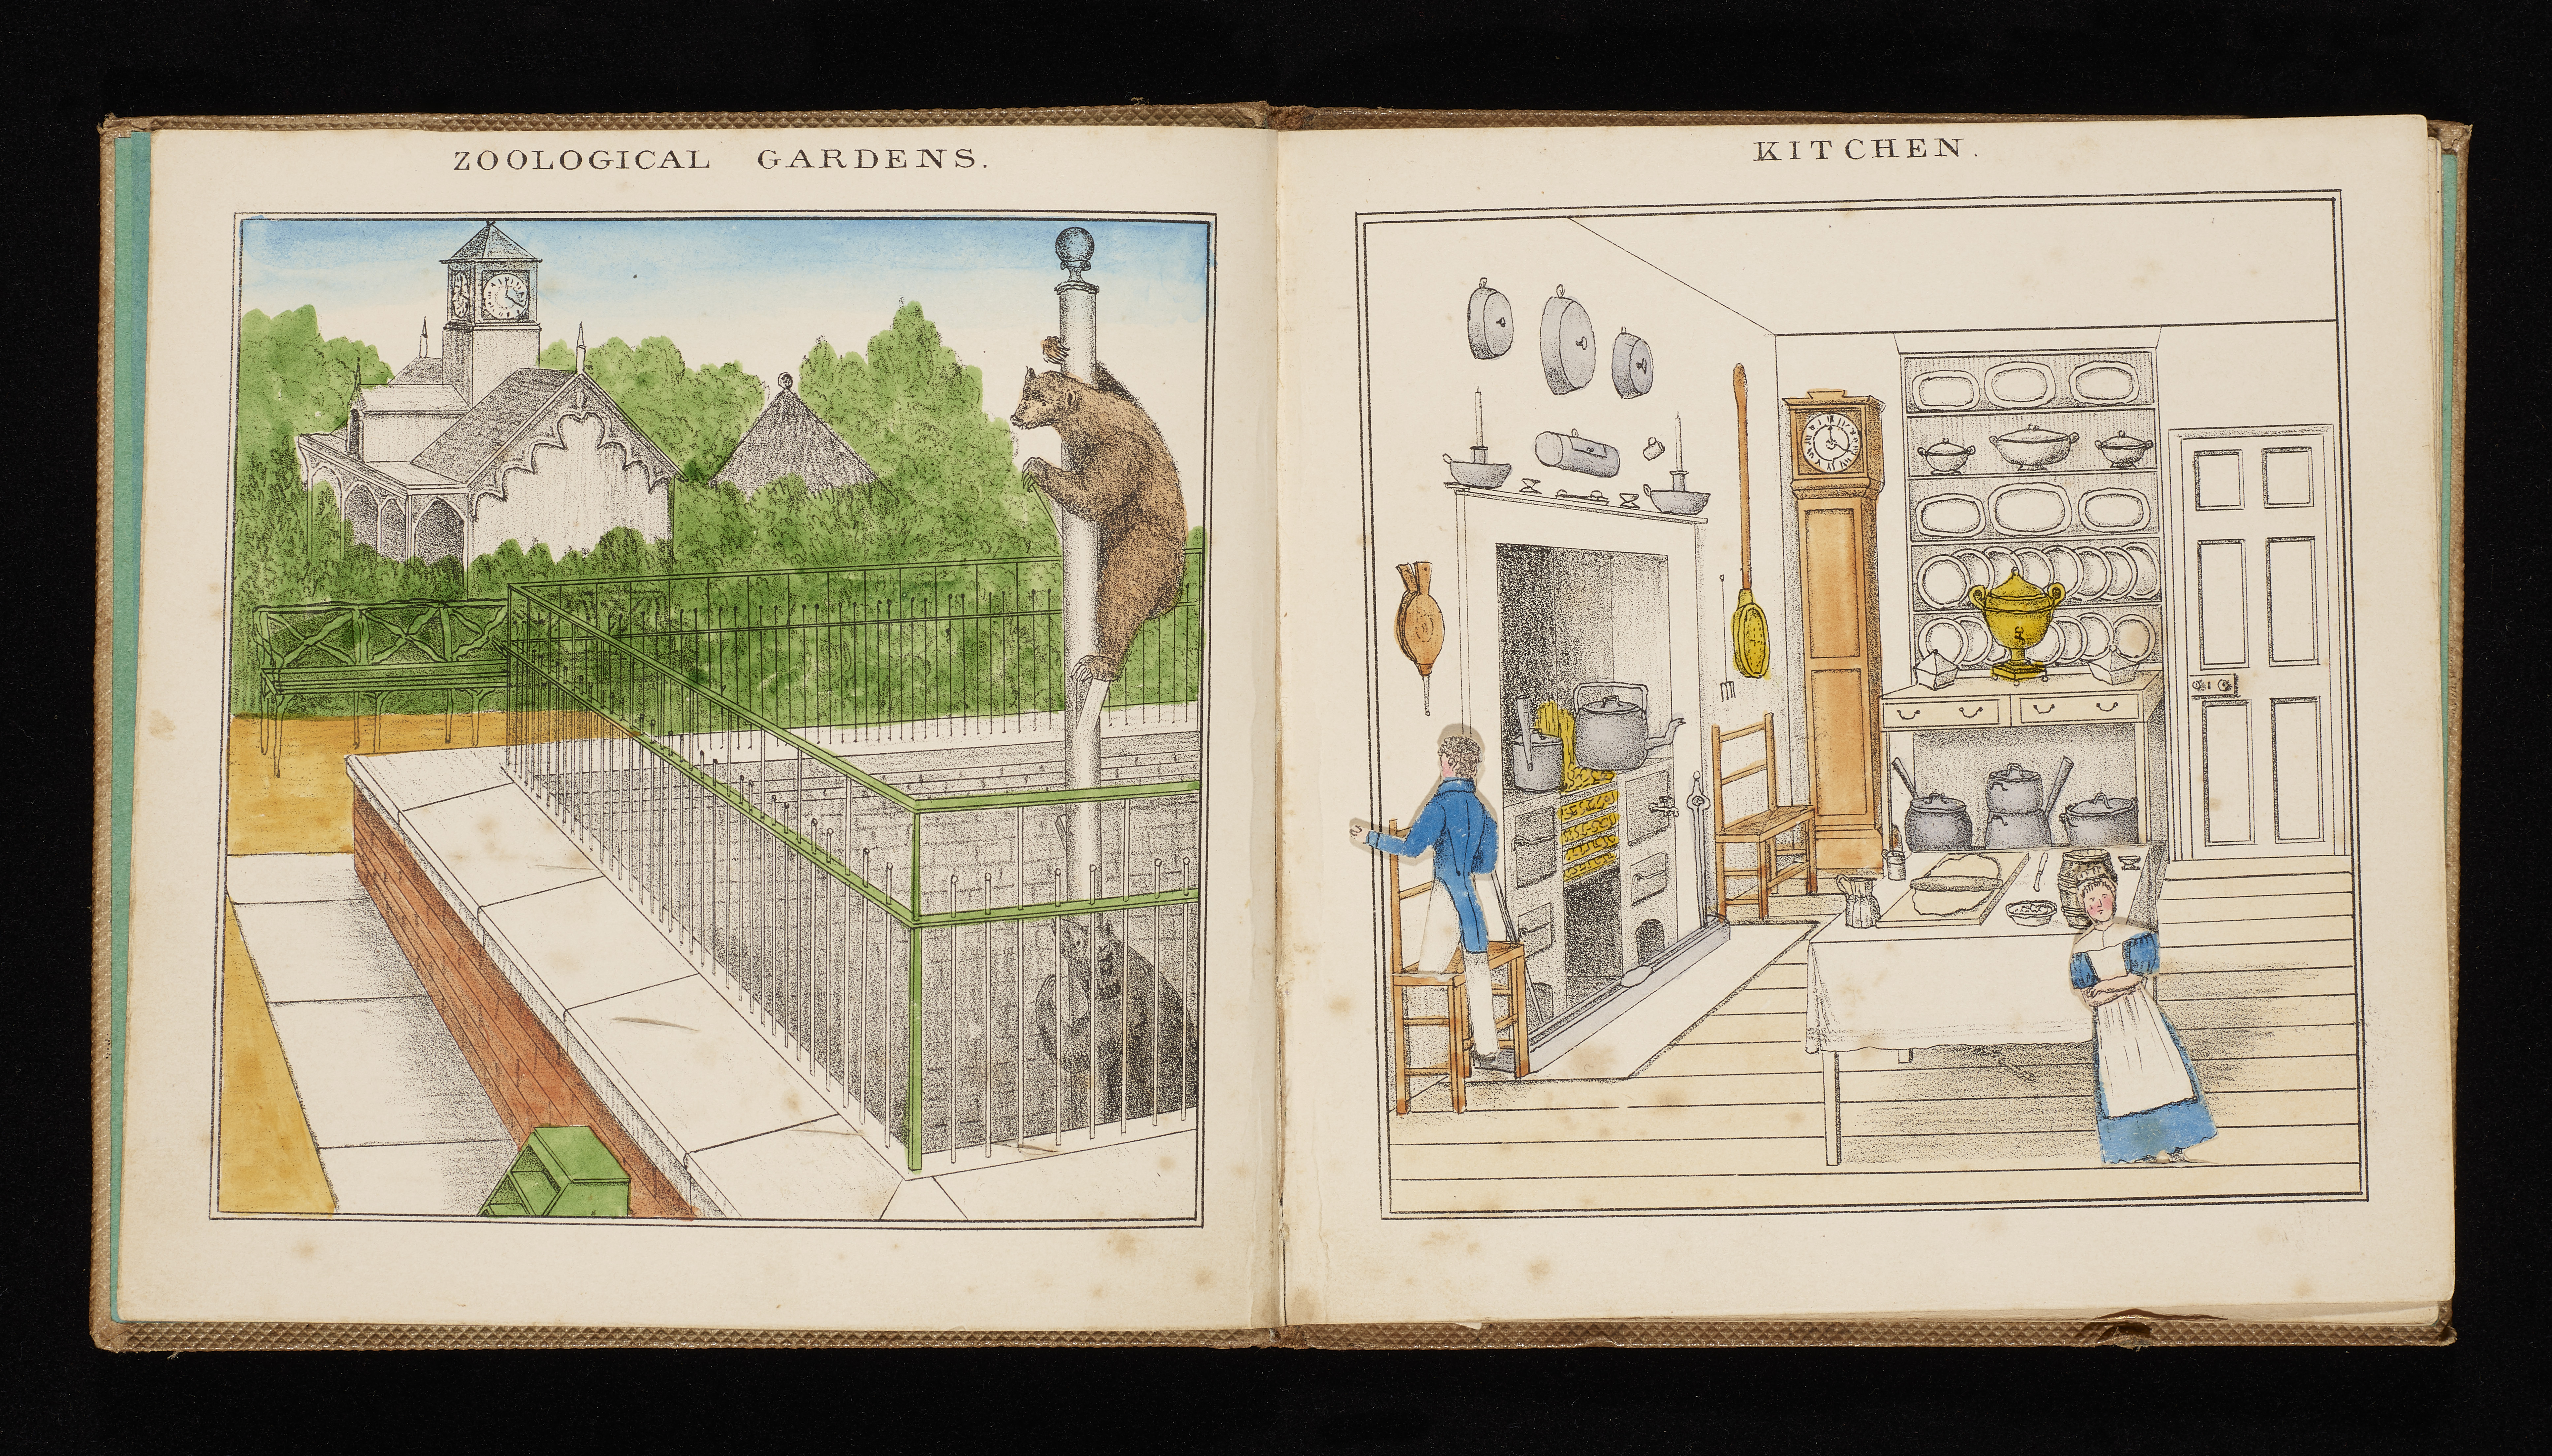 Two colour illustrated scenes, one showing a zoo with two bears climbing a pole, and one showing a kitchen.